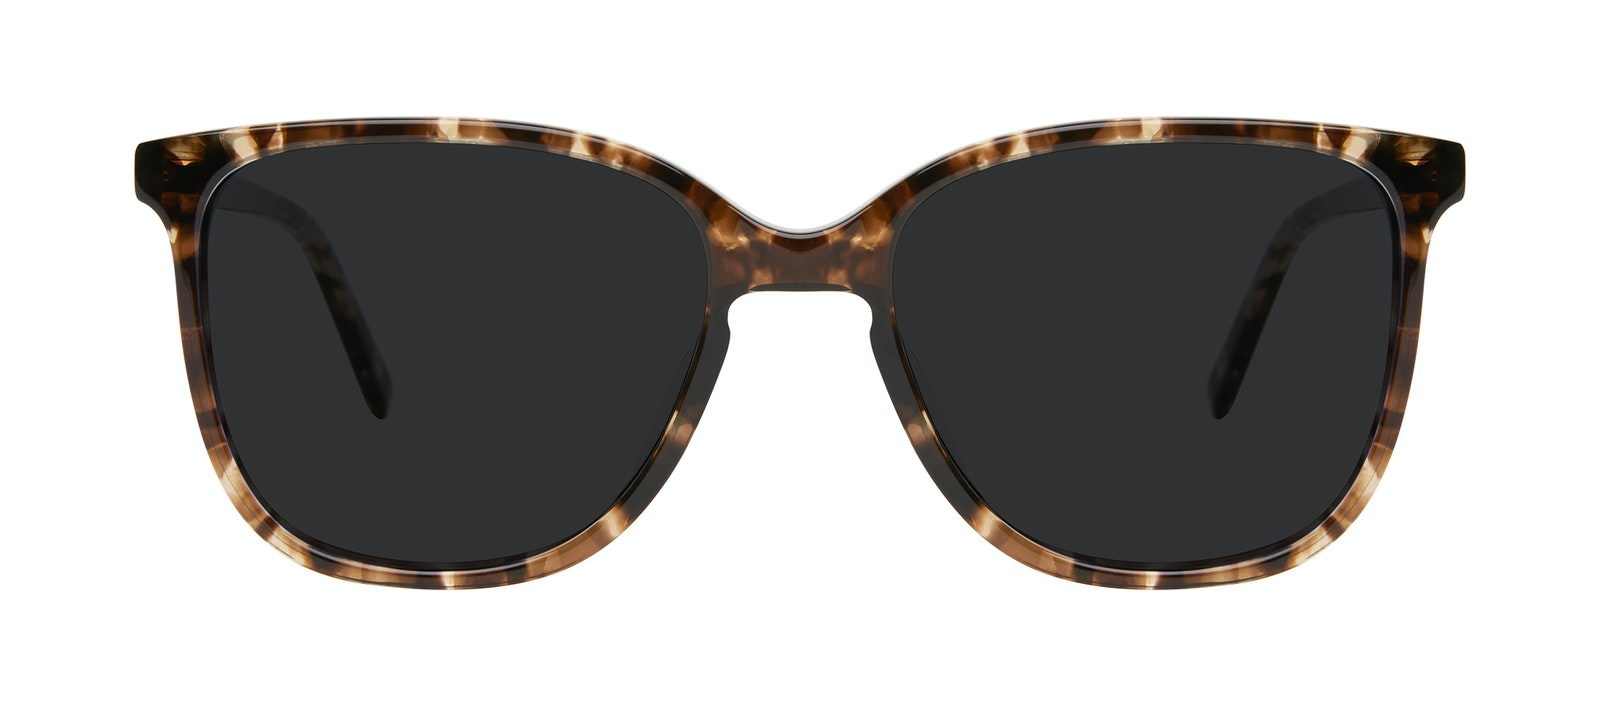 Affordable Fashion Glasses Square Sunglasses Women Lead Leopard Front